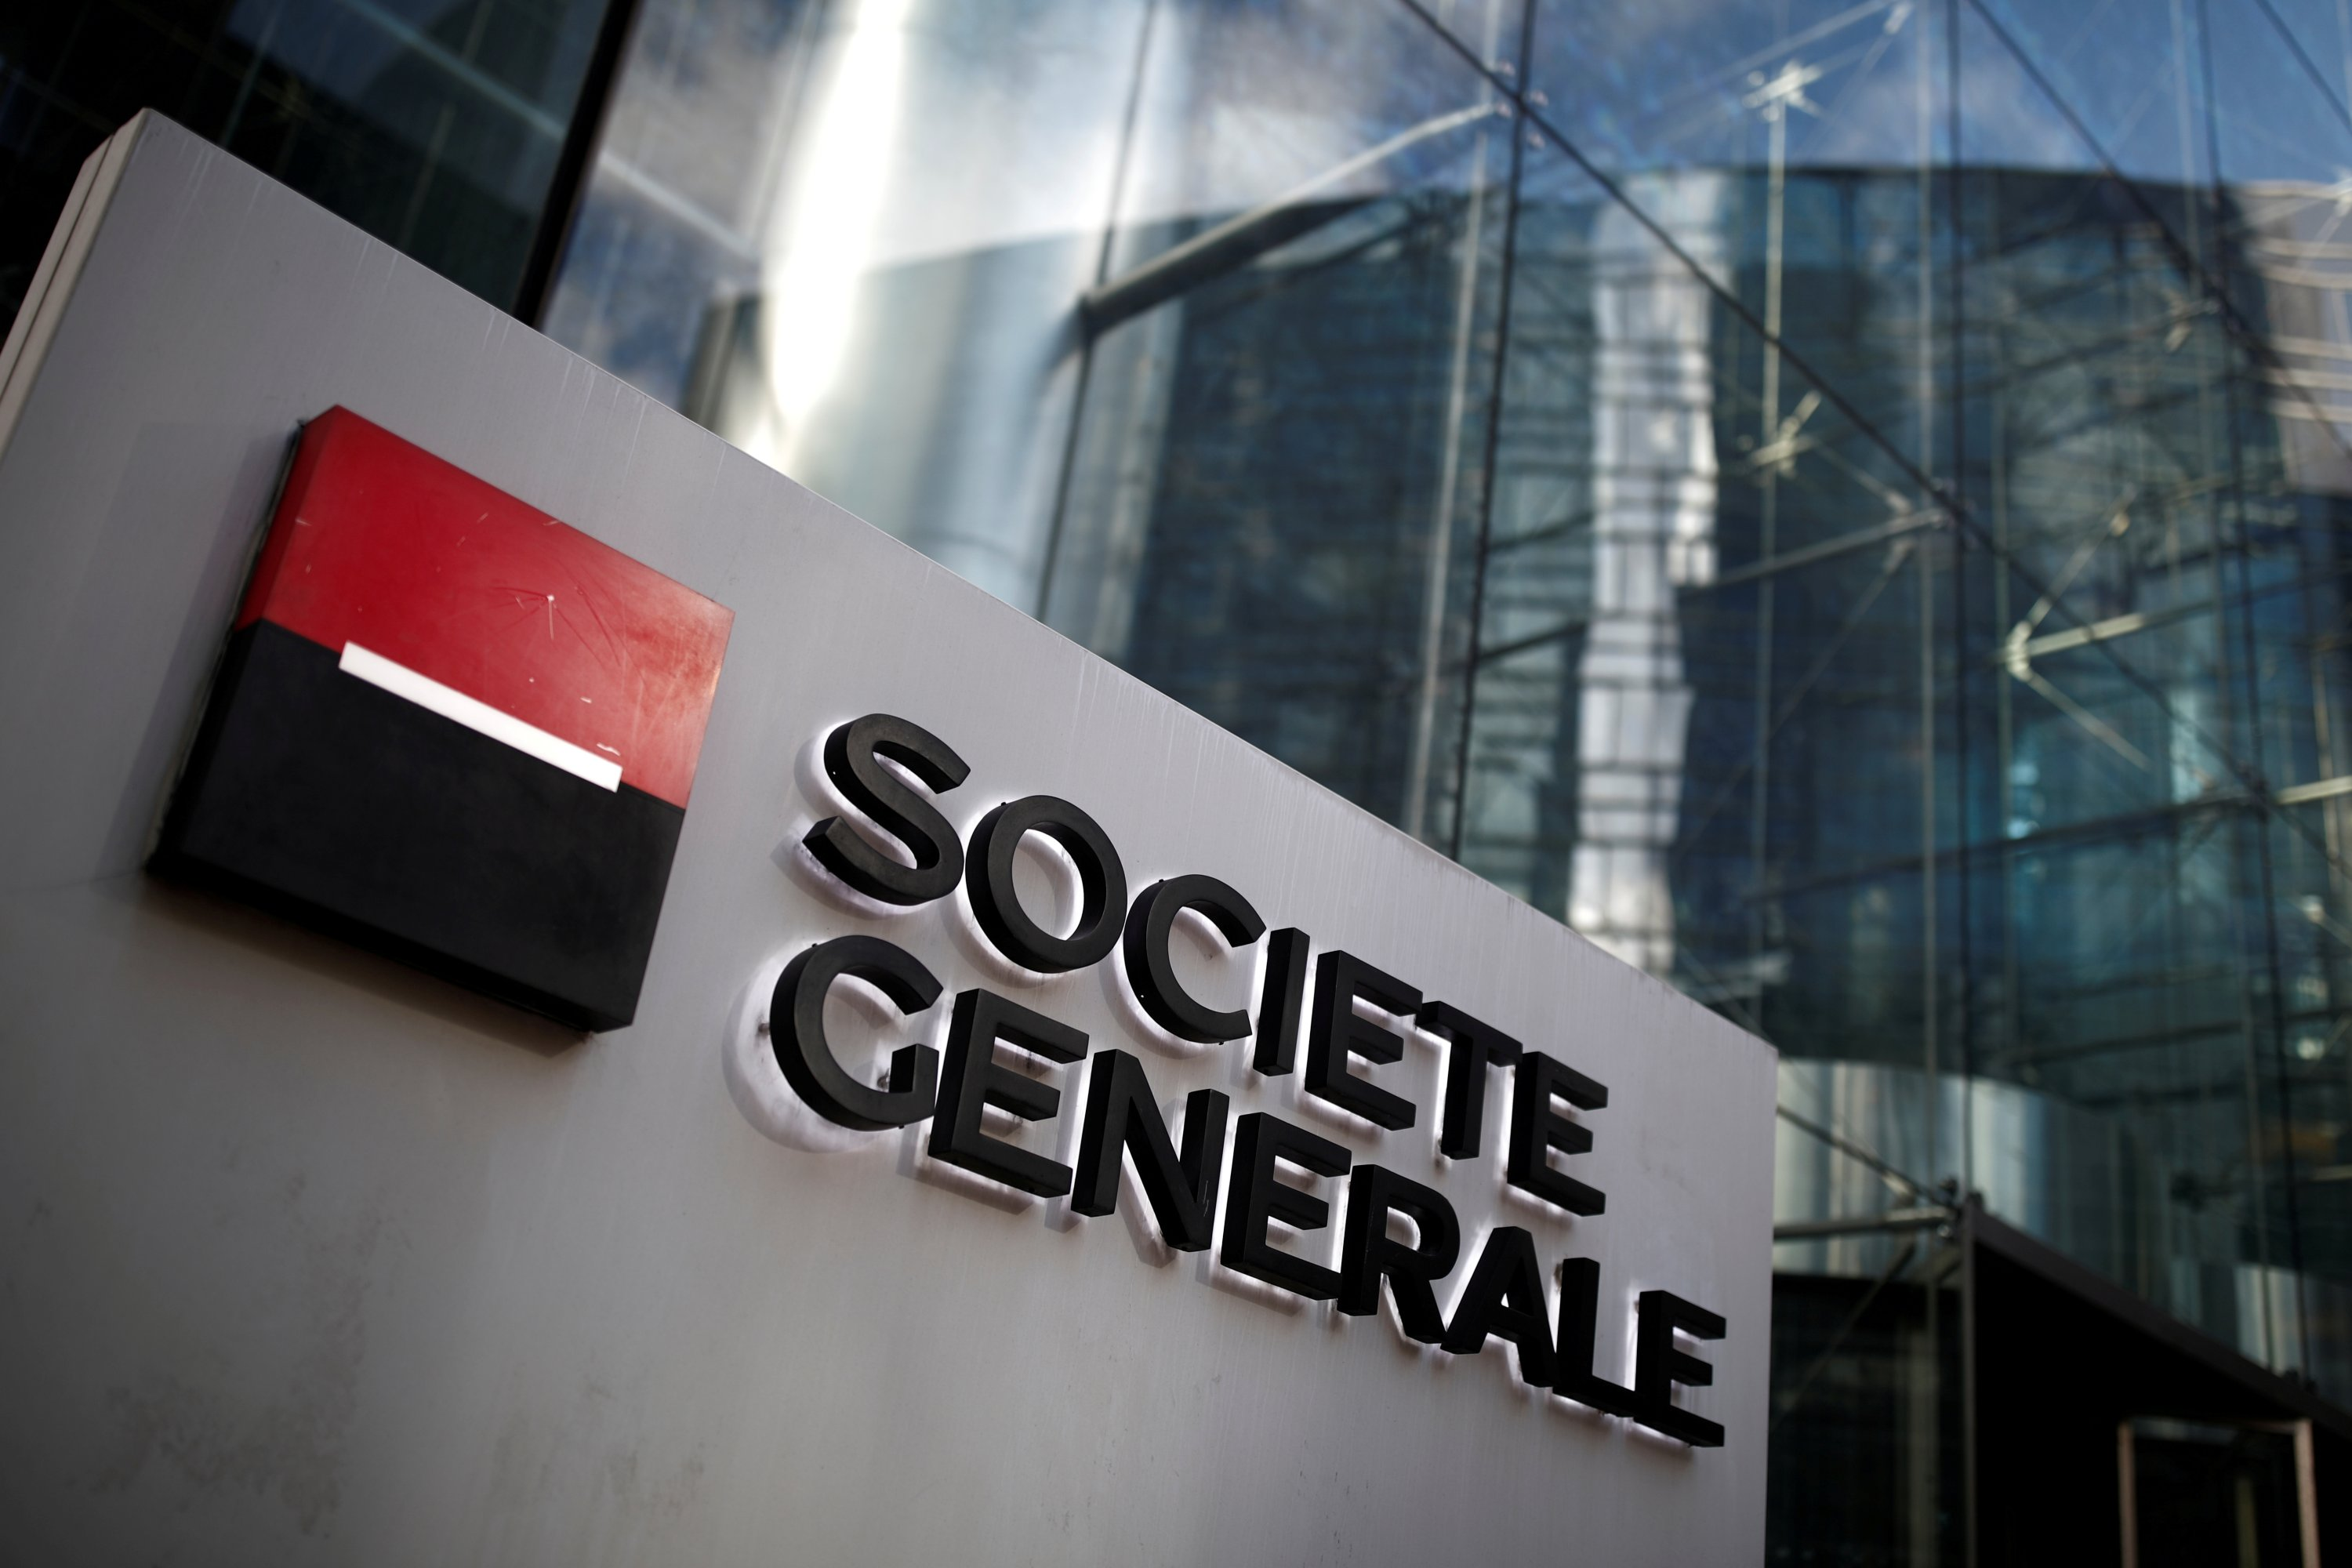 French bank Societe Generale to slash branches to save money in COVID-19 response thumbnail